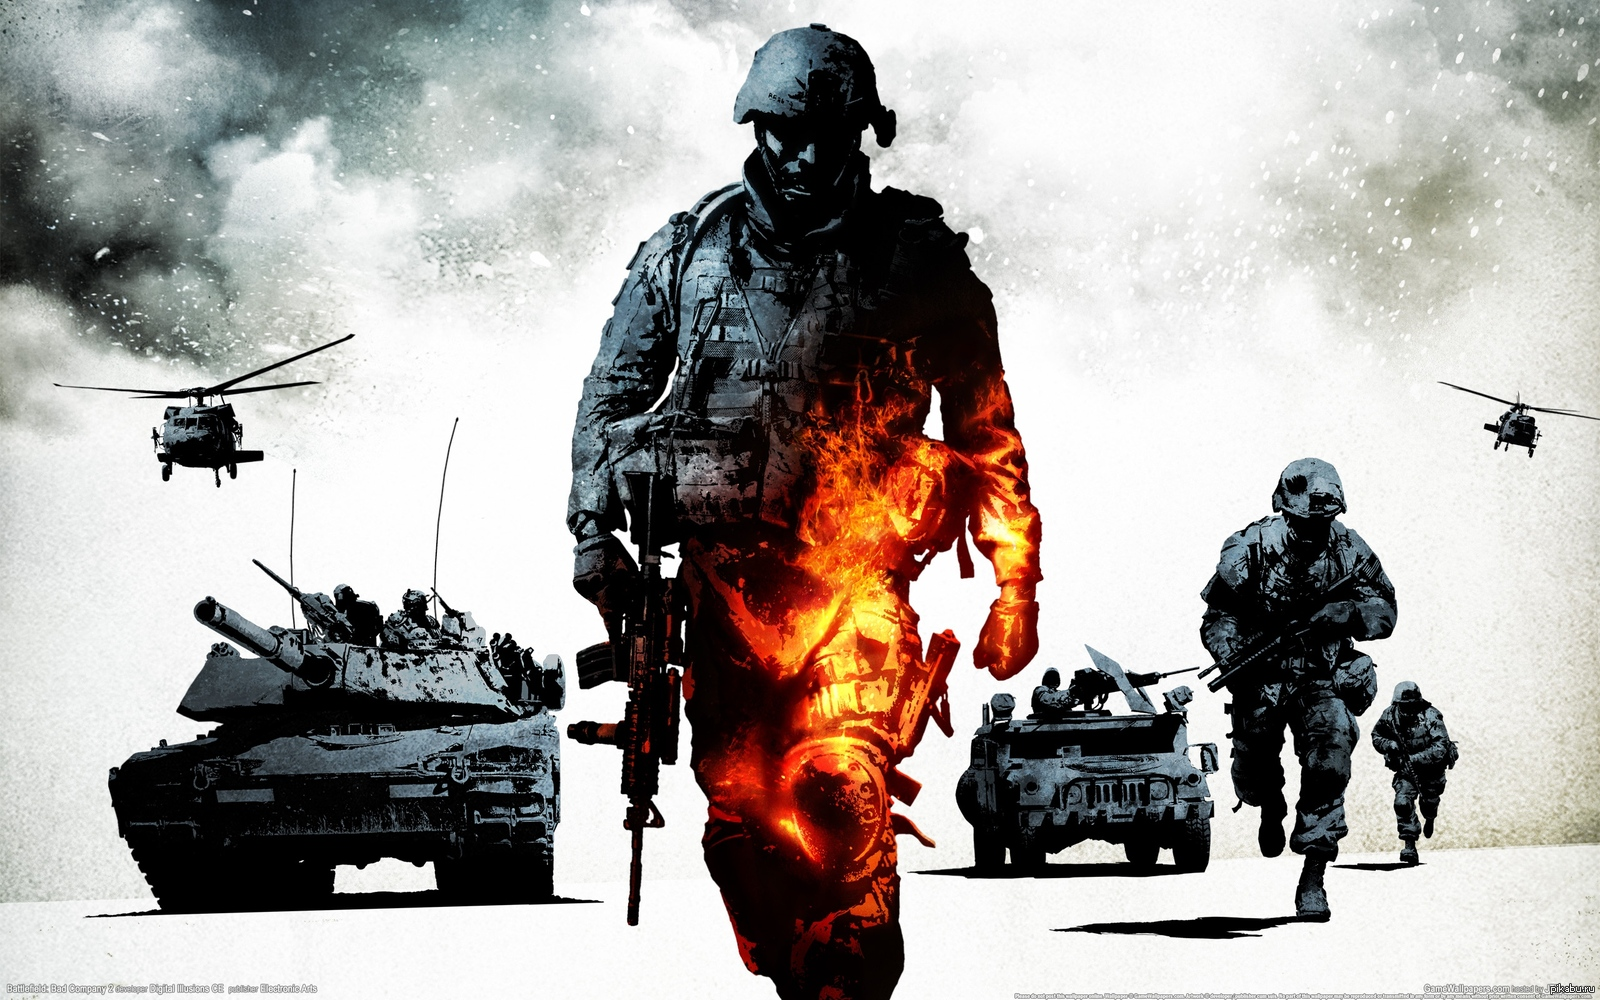 42 cool army wallpapers in hd for free download - HD 2560×1440